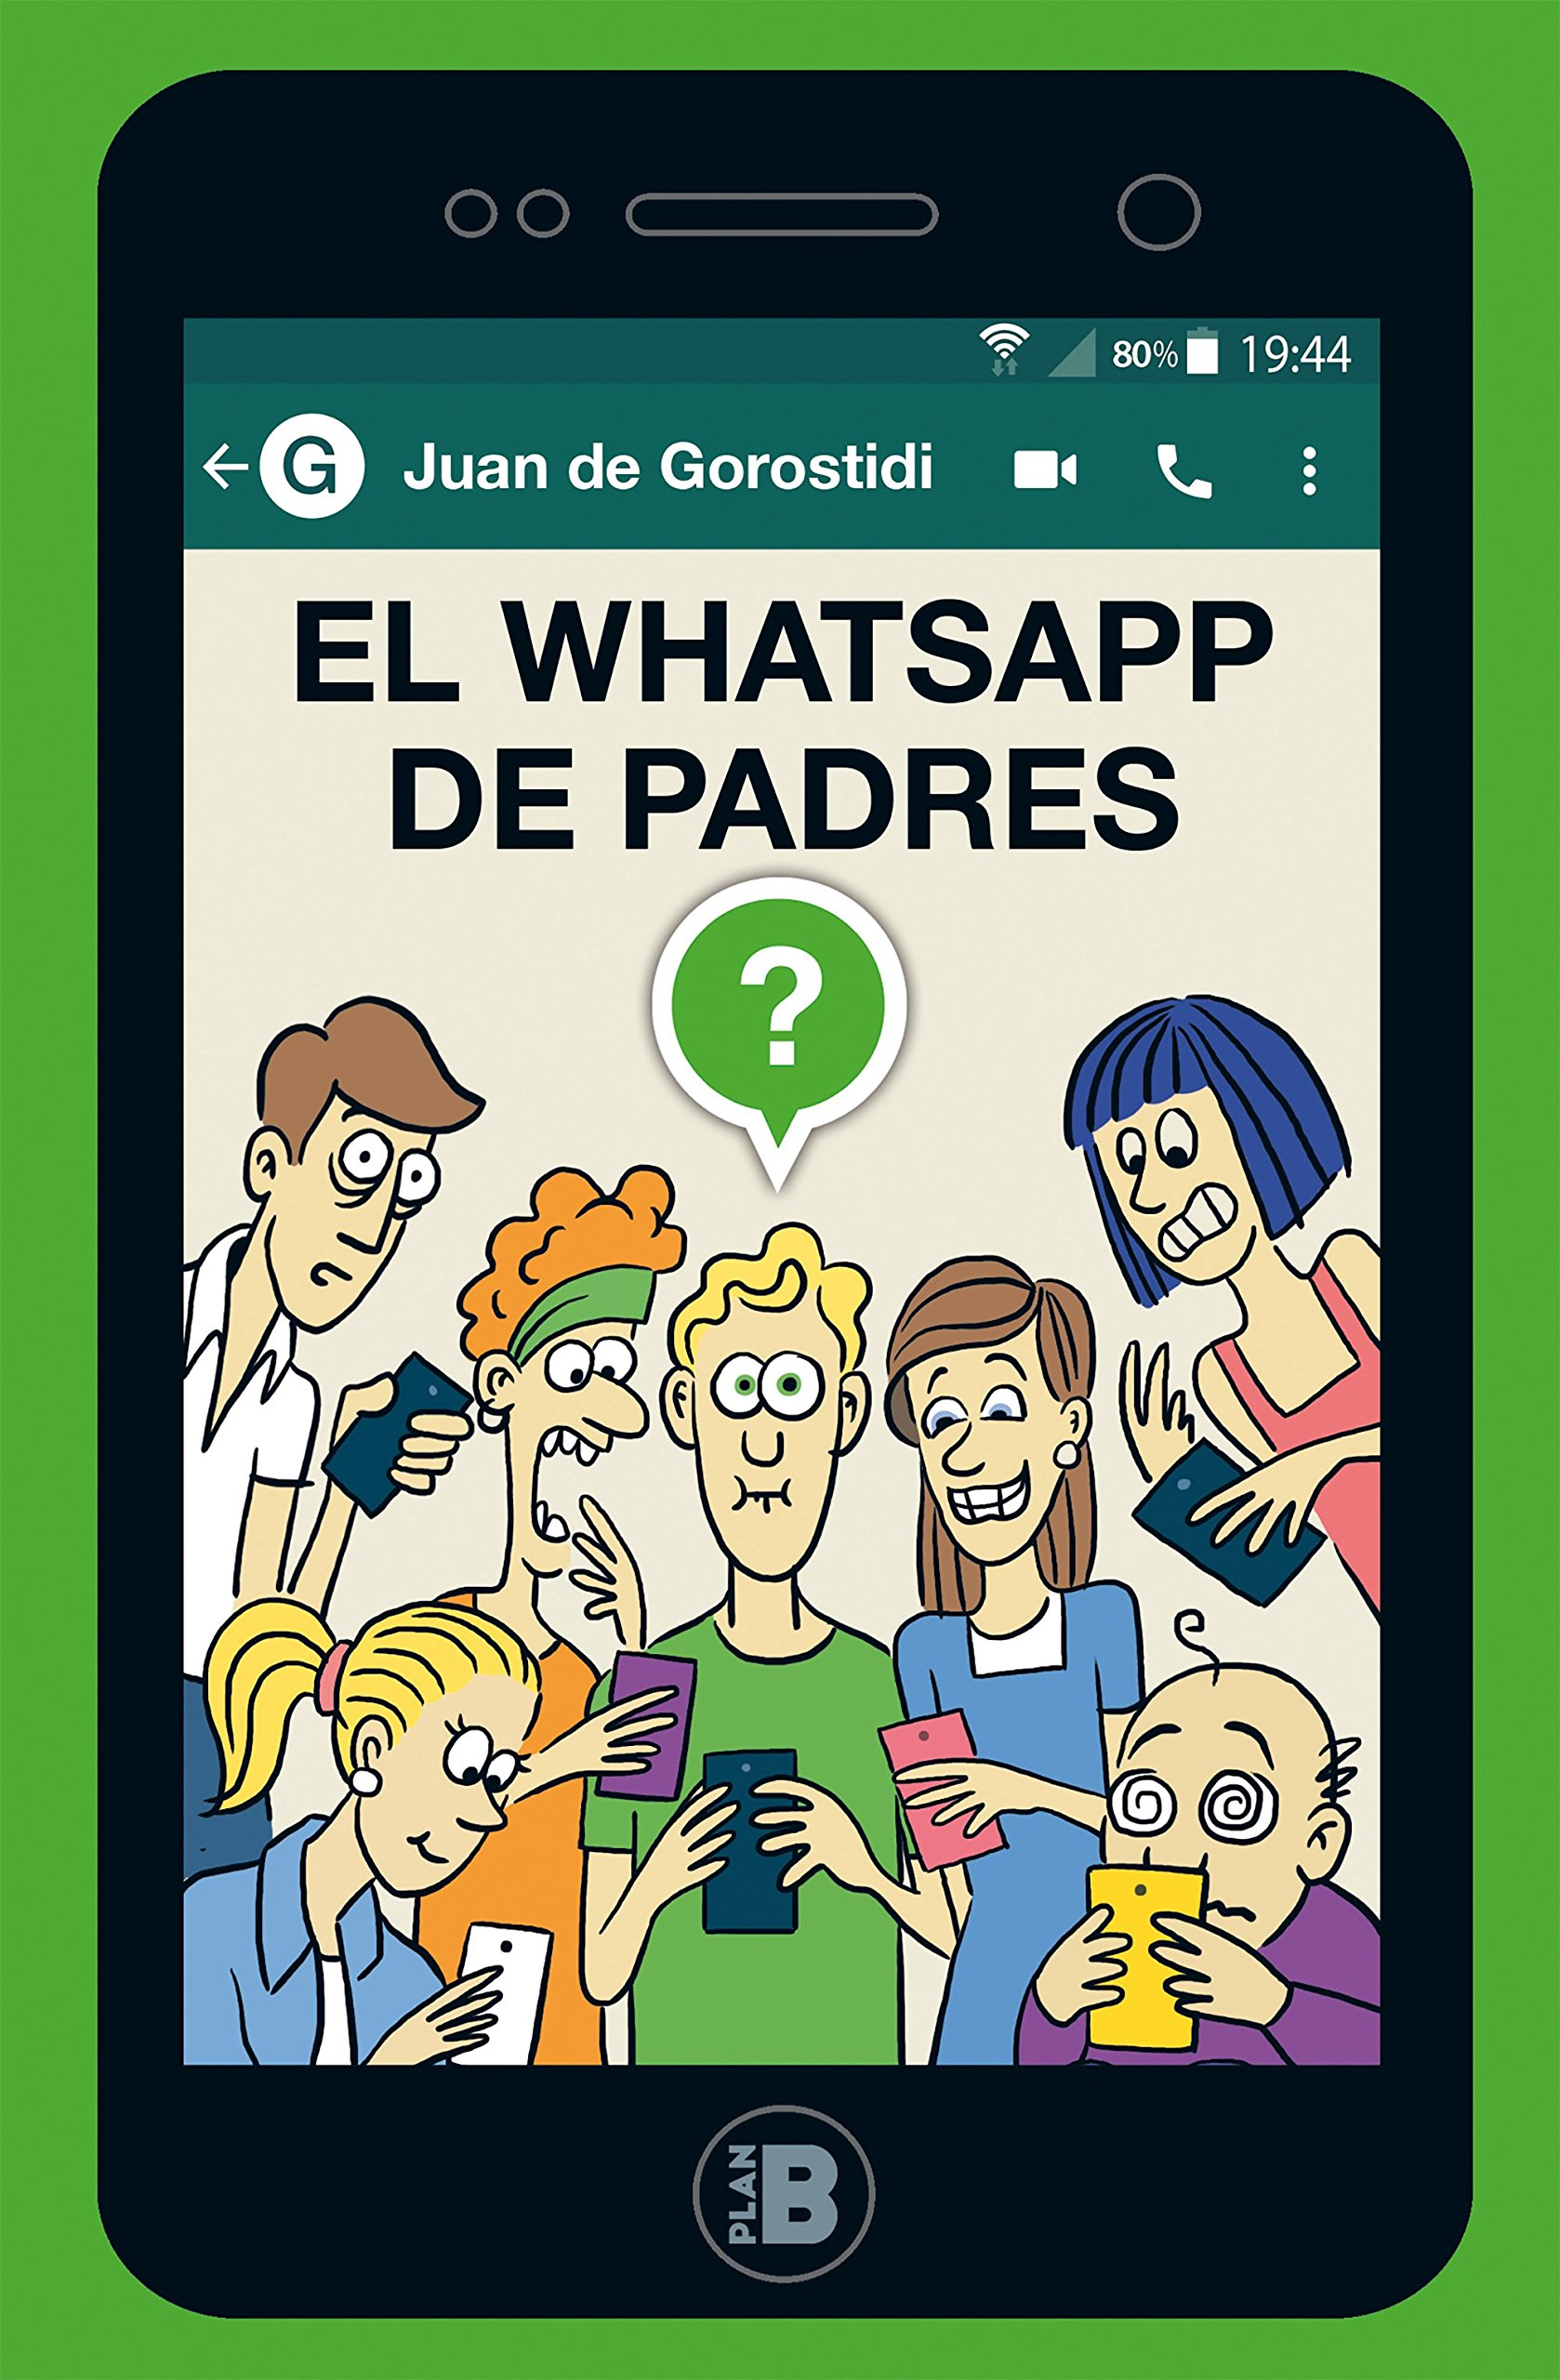 El WhatsApp de padres (PLAN B) Tapa blanda – 4 oct 2018 Juan De Gorostidi Plan B (Ediciones B) 8417001433 FICTION / Humorous / General